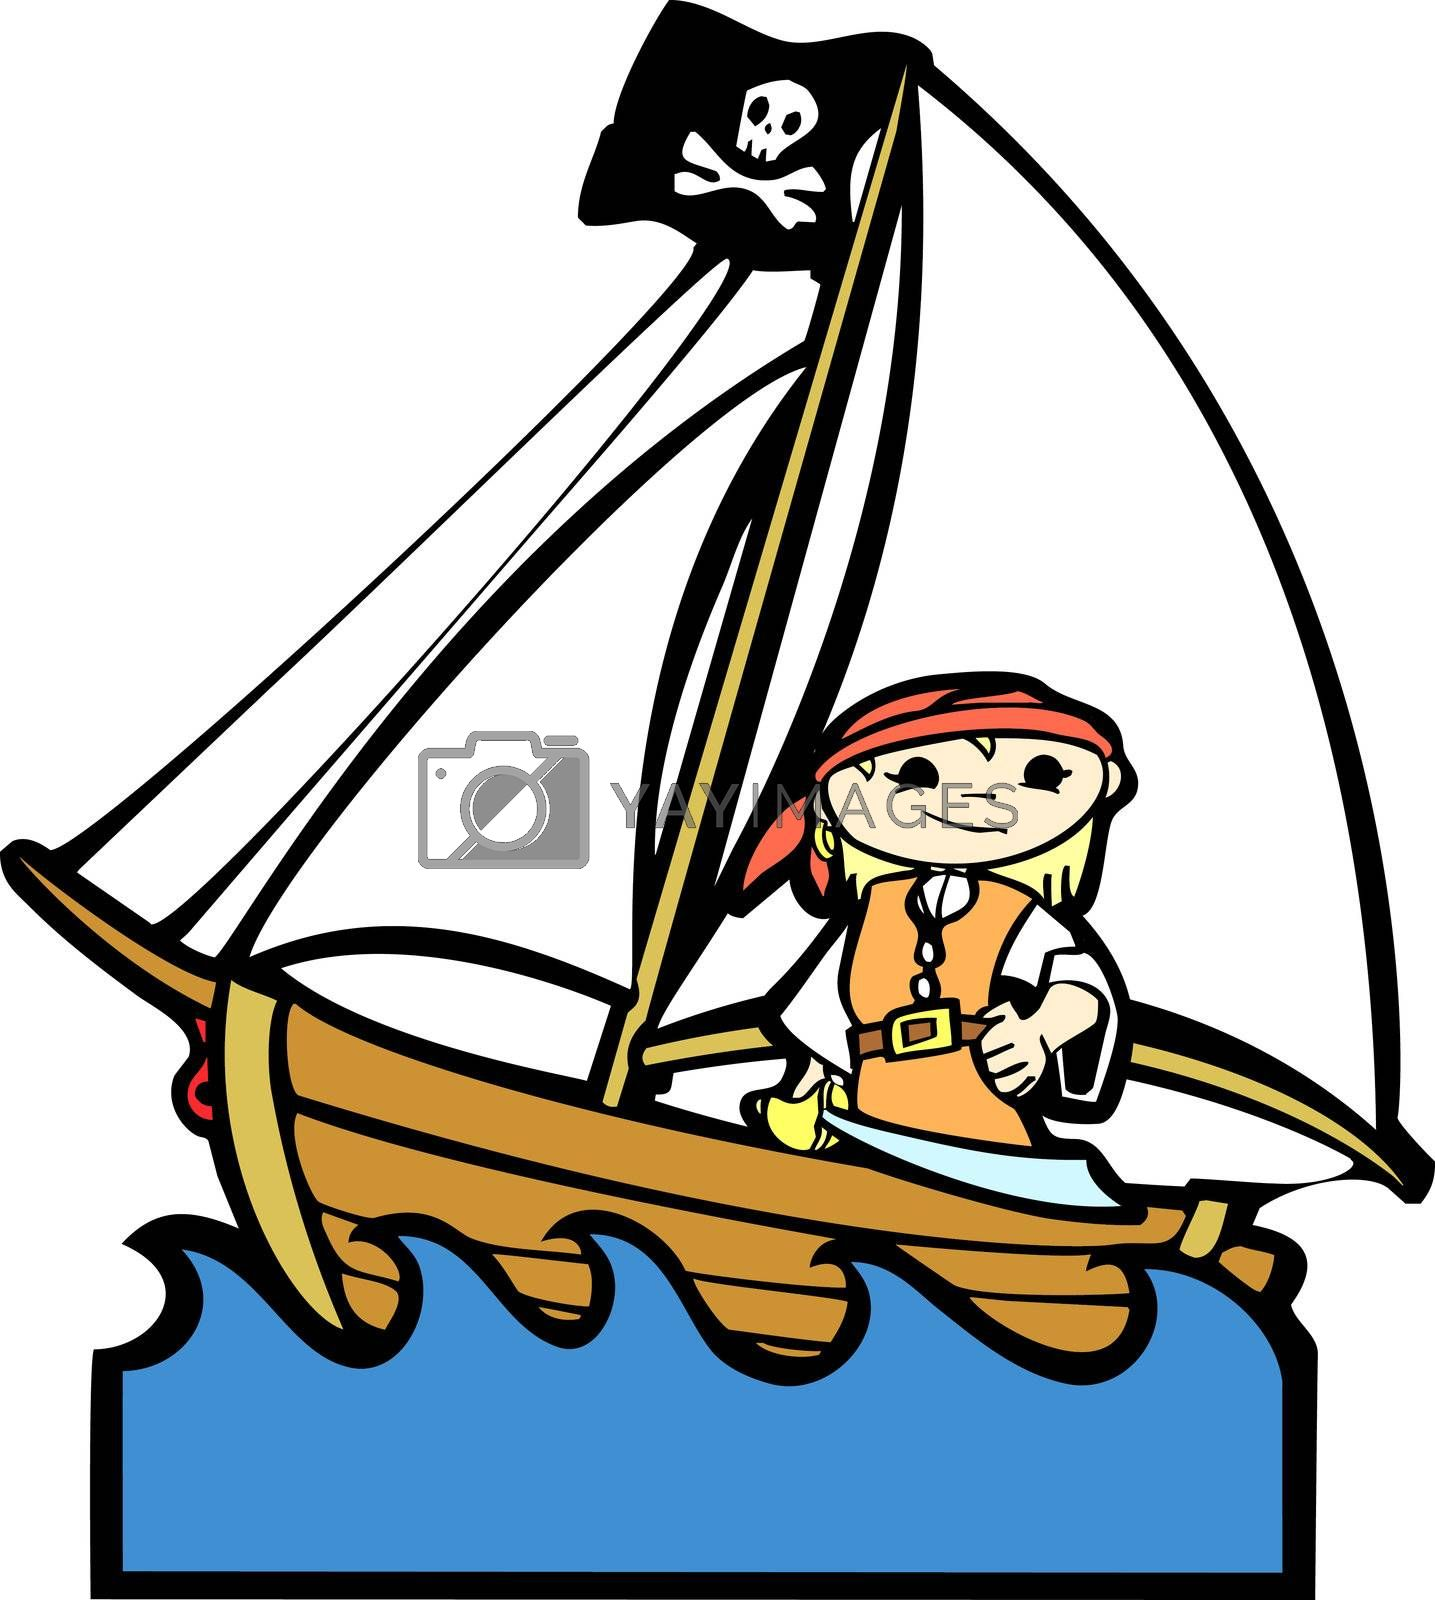 Simple children's boat image with girl in pirate costume.